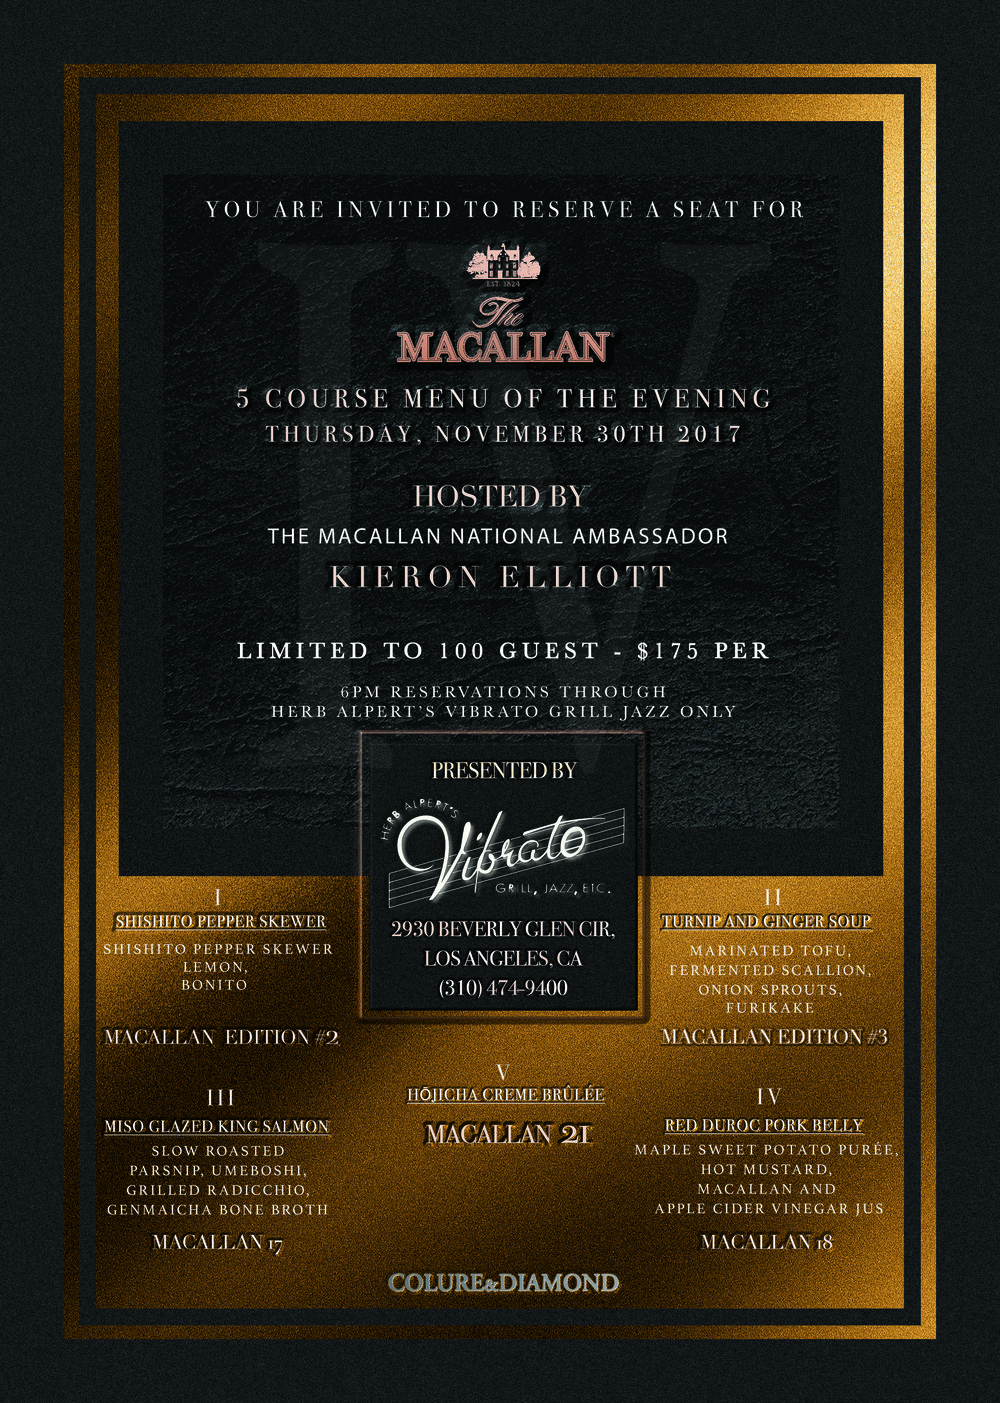 Macallan 5 Course Menu of The Evening 2017  By Colure and Diamond, Vibrato, and The Macallan.